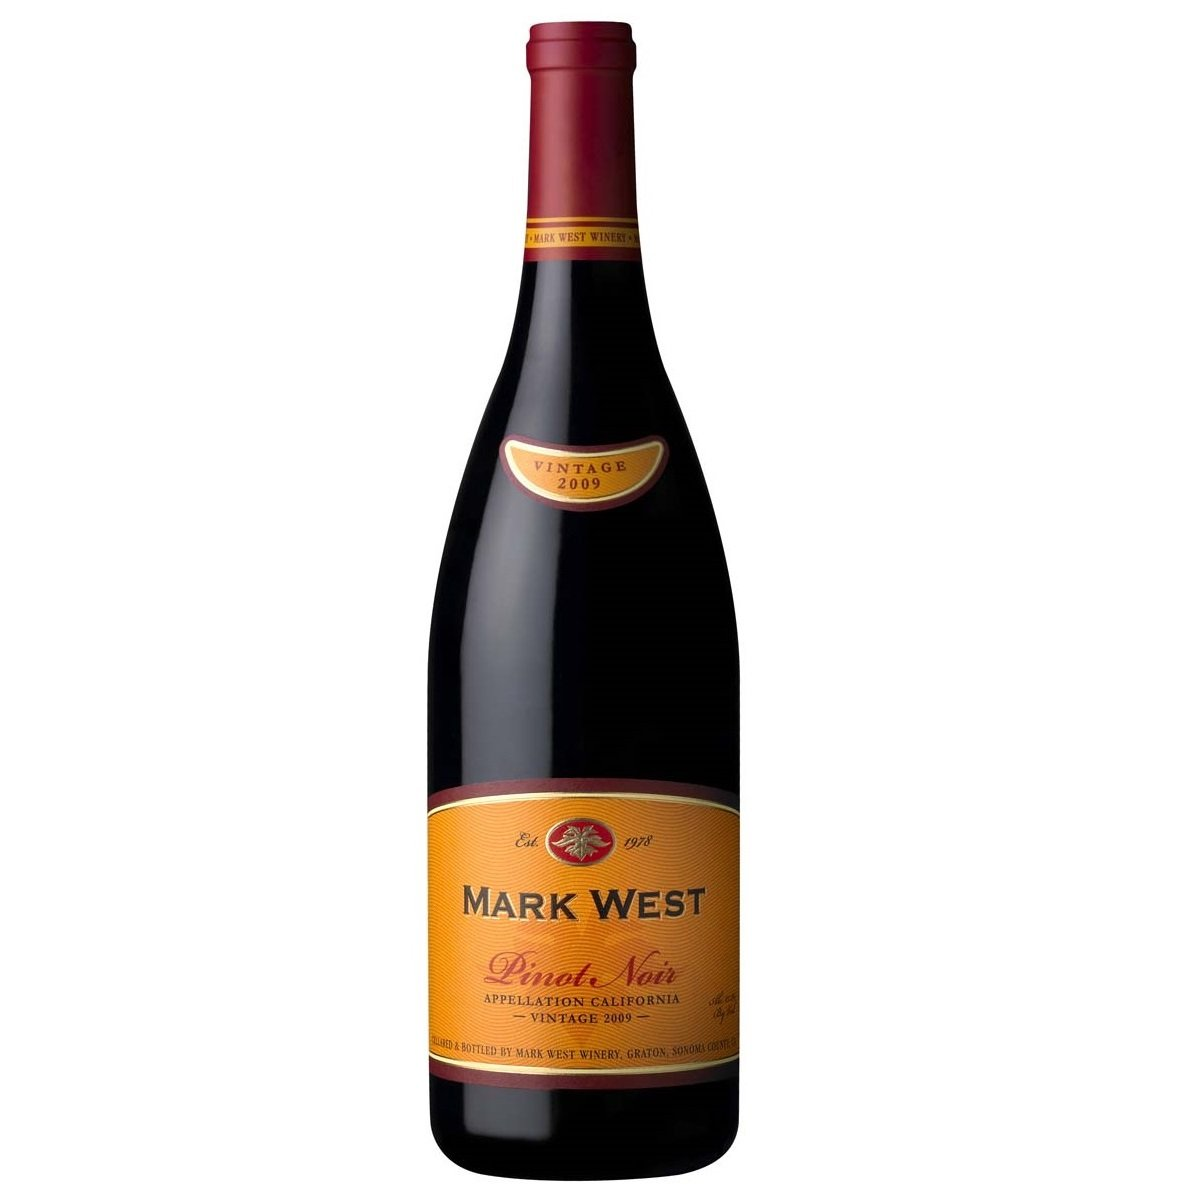 Mark West Pinot Noir Beercastleny